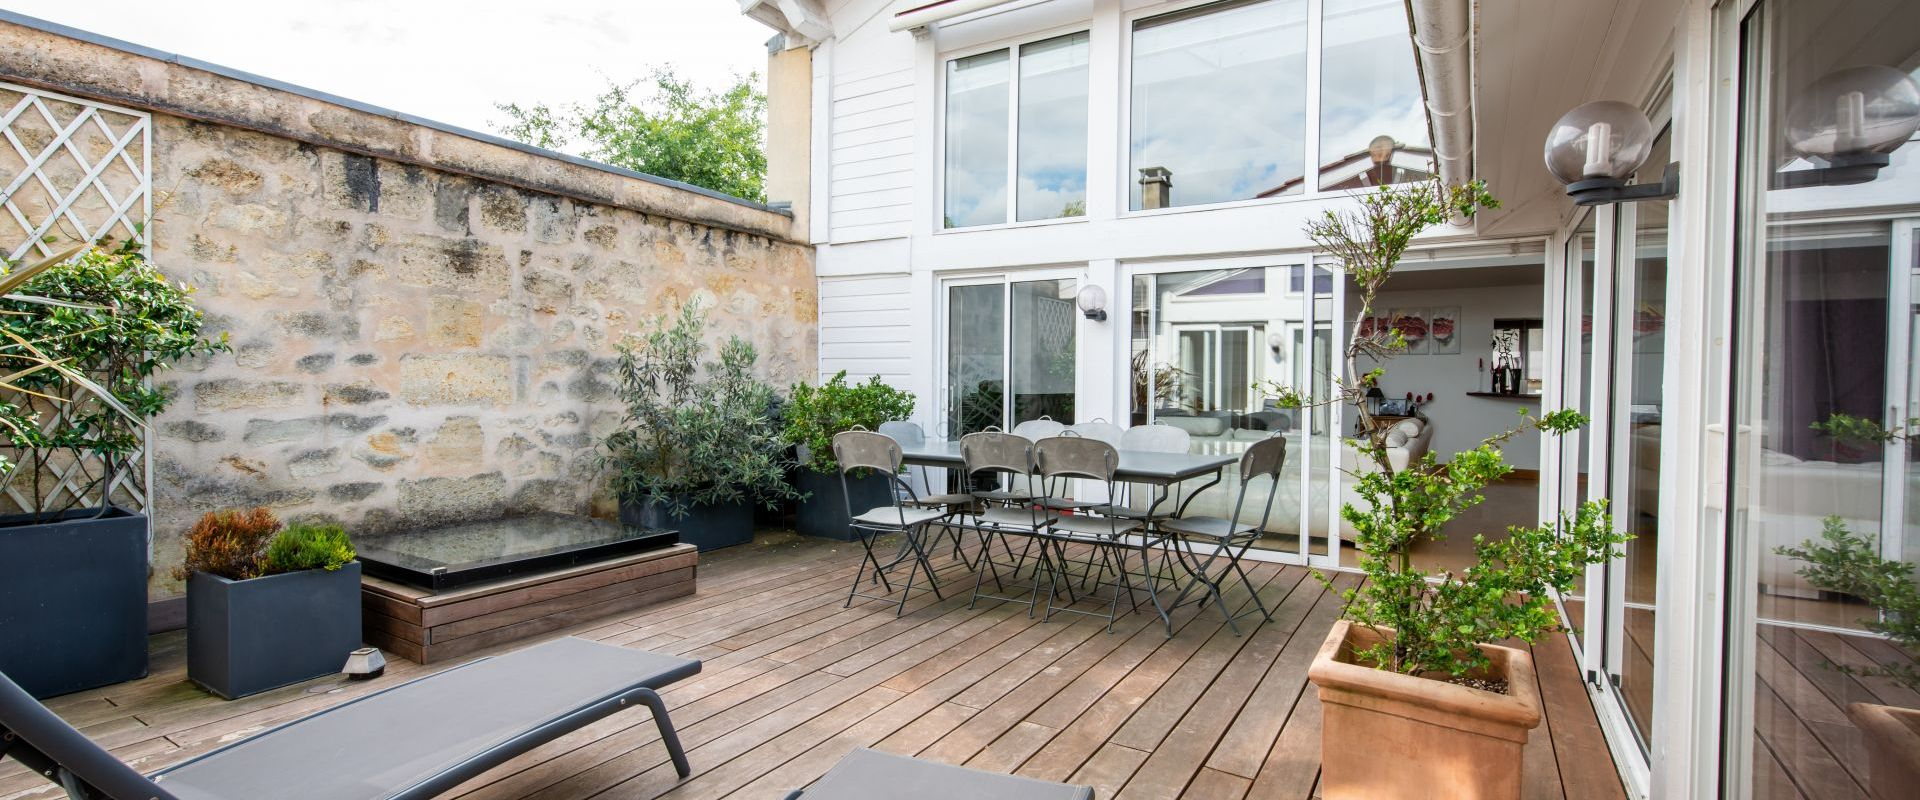 Terrasse loft bordeaux judaique